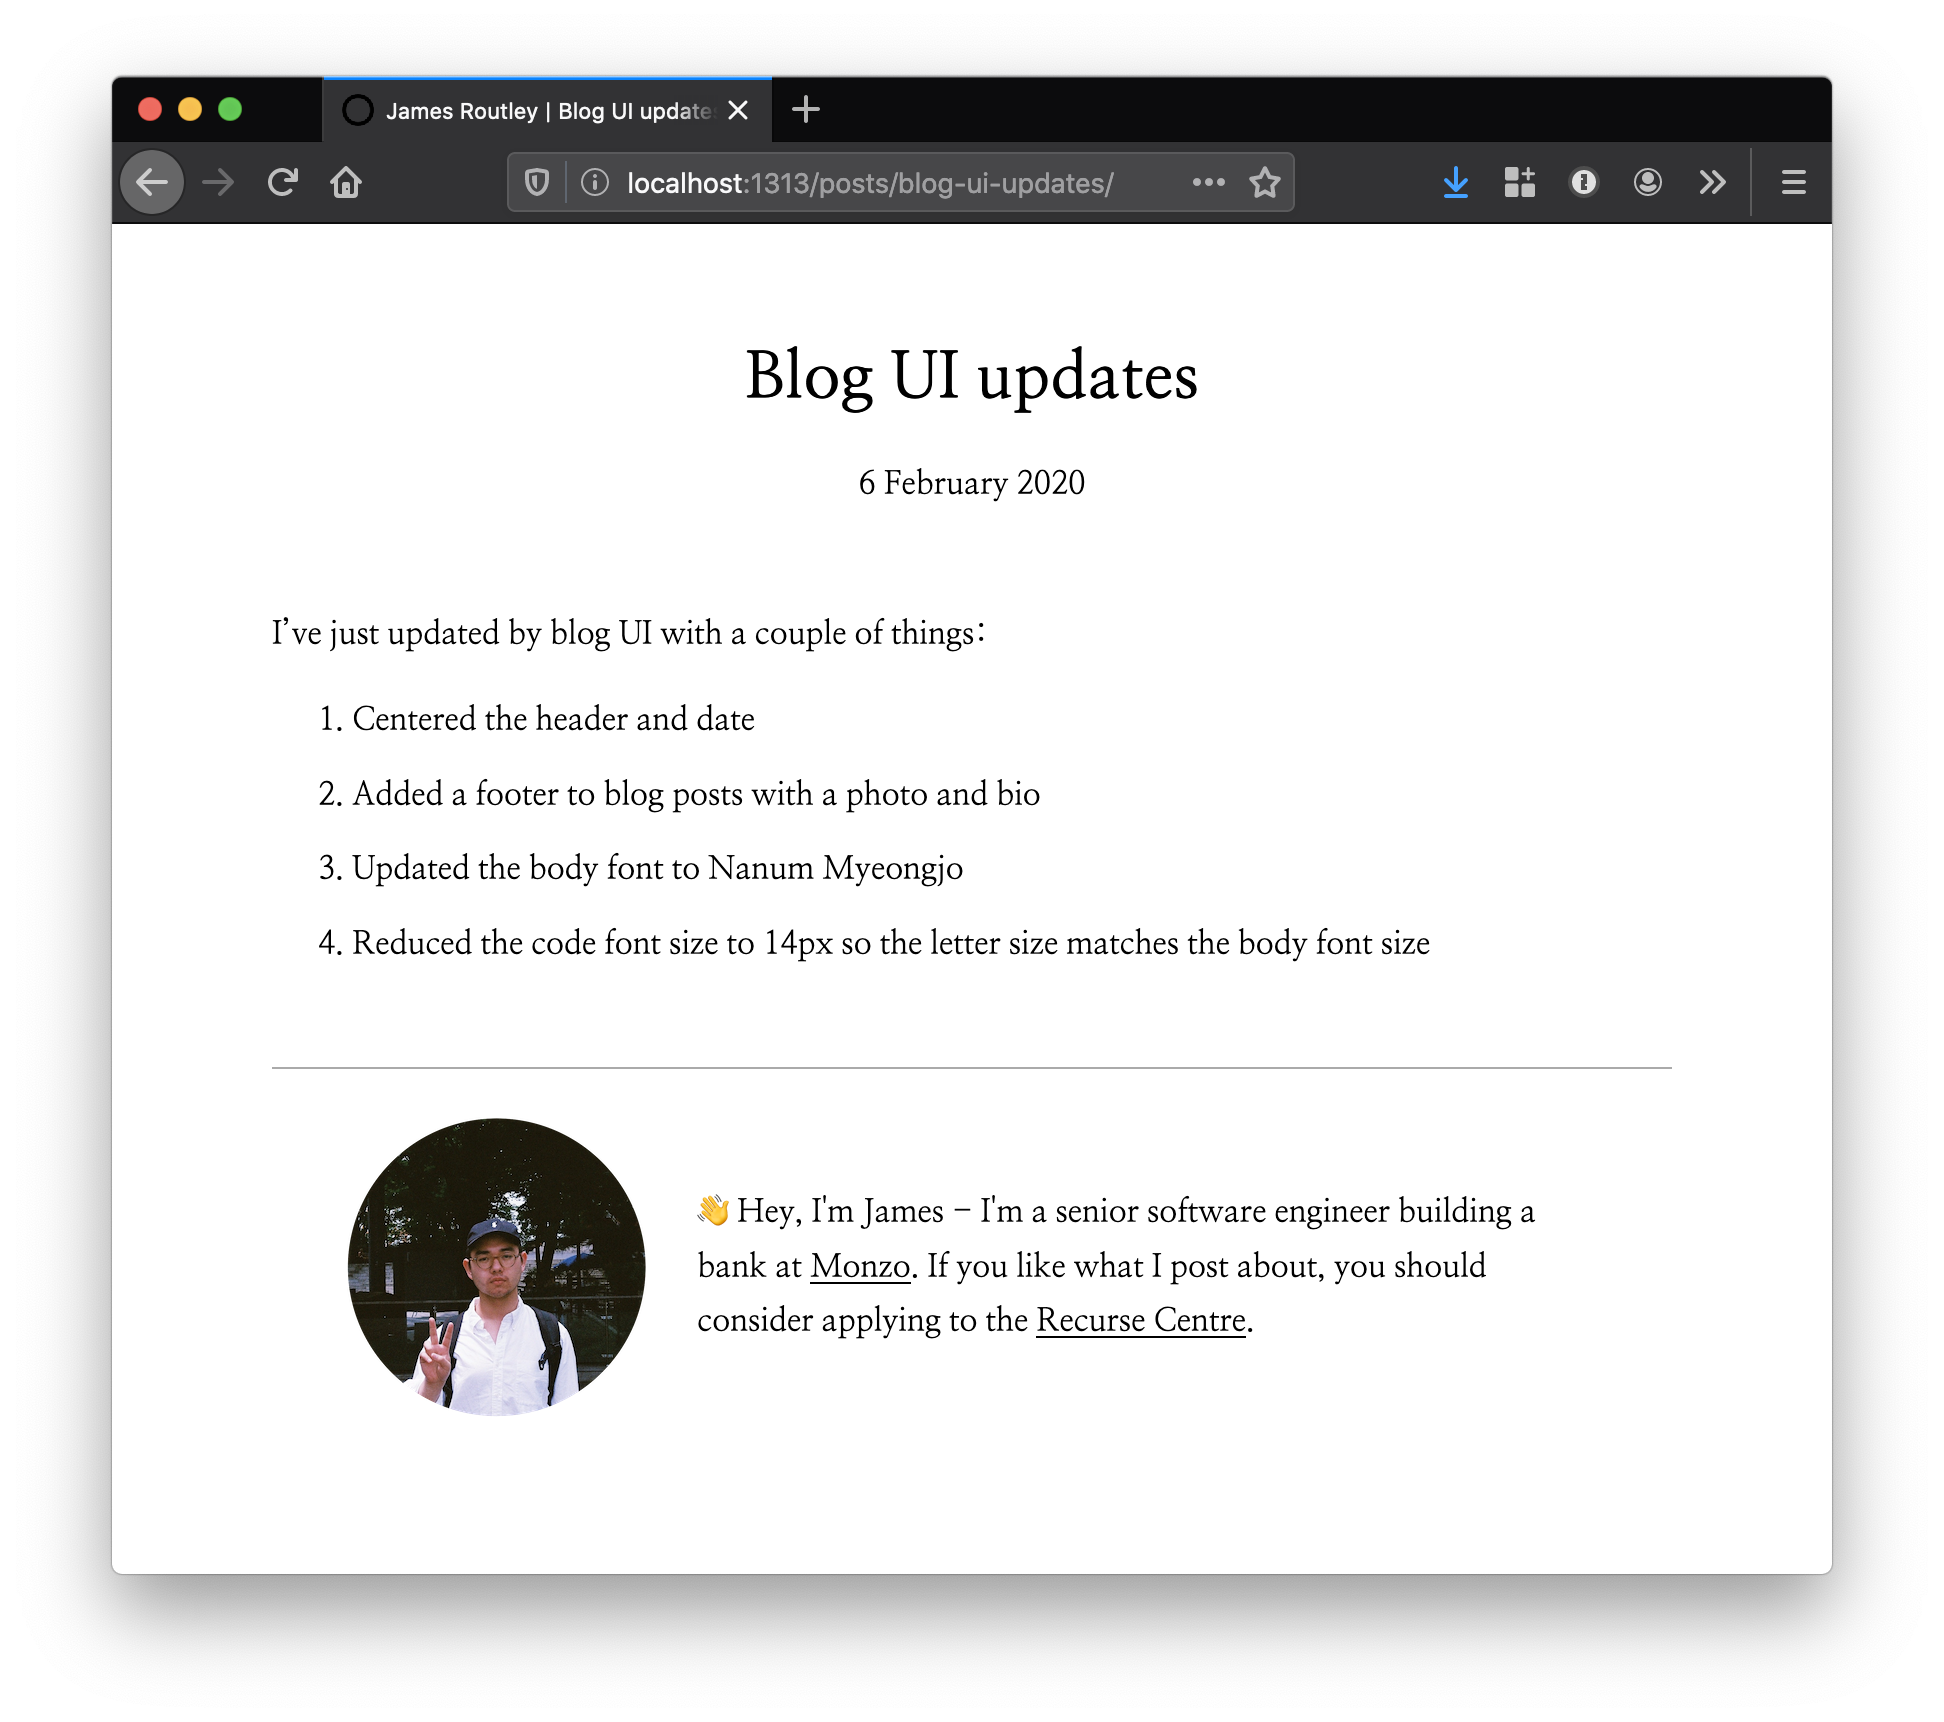 My blog as it looks in Feb 2020